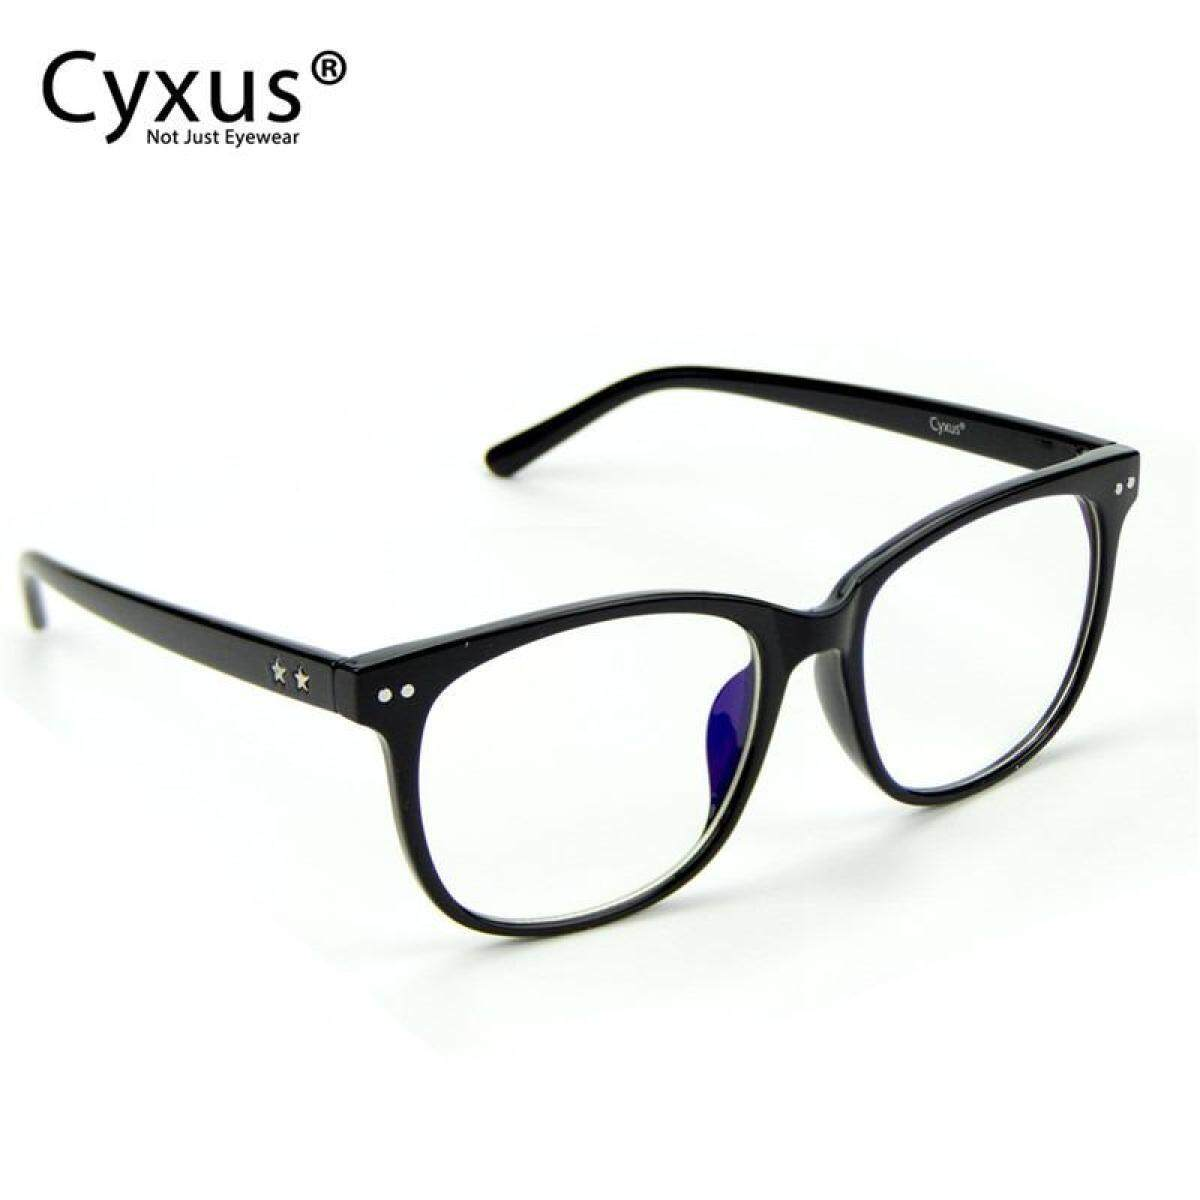 69481d2aa4 Cyxus Blue Light Blocking Computer Glasses for Anti Eye Fatigue Oversized  Frame Men Women Eyewear